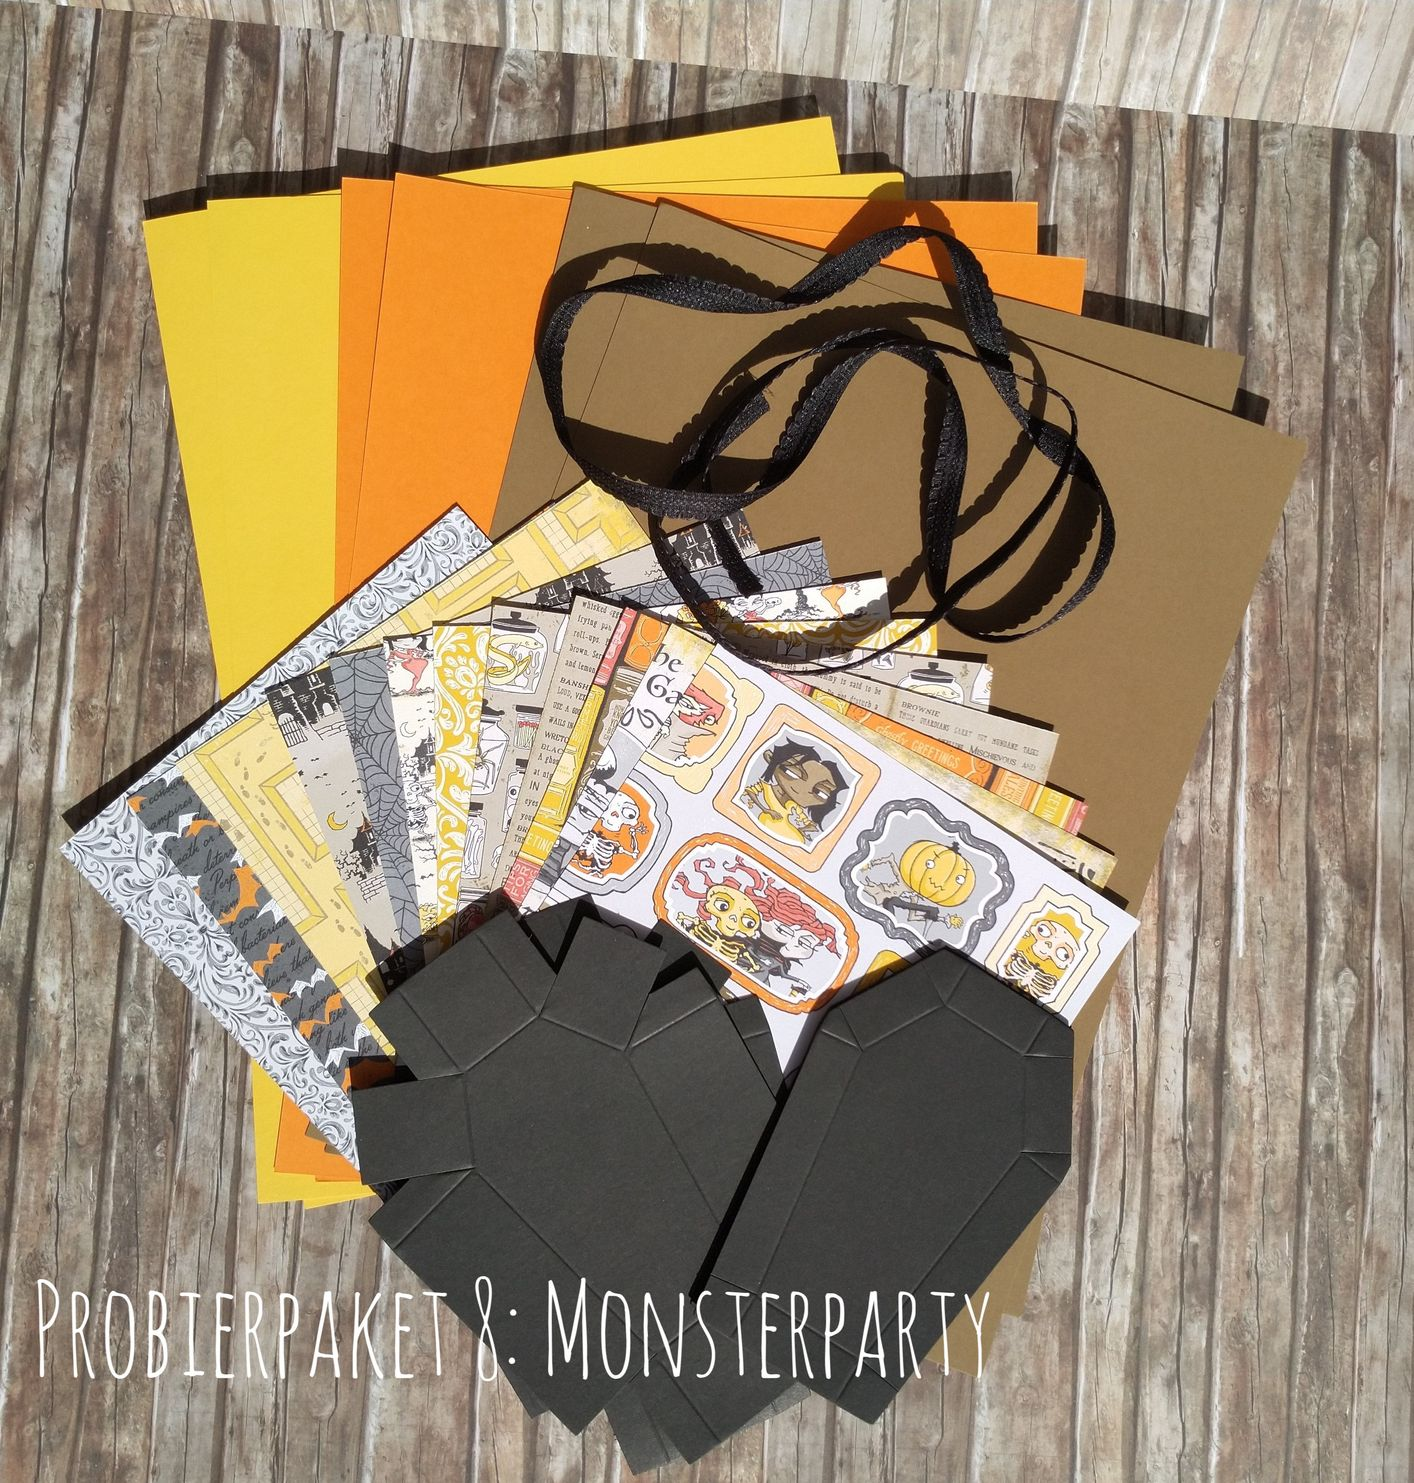 Probierpaket 8 Monsterparty